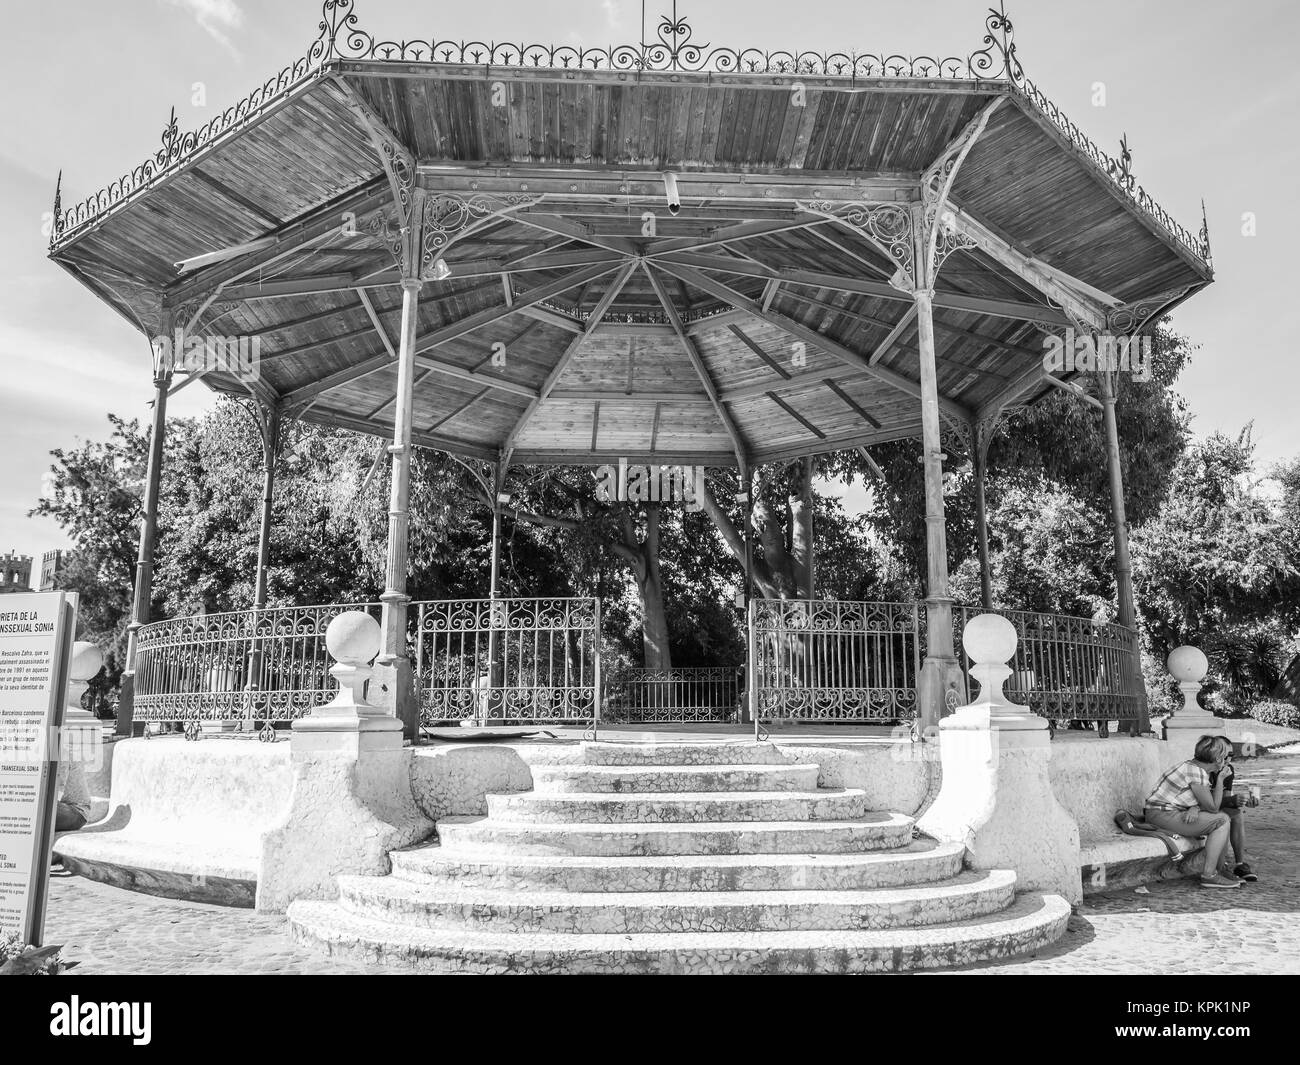 The bandstand where transgender Sonia was killed in 1991. - Stock Image